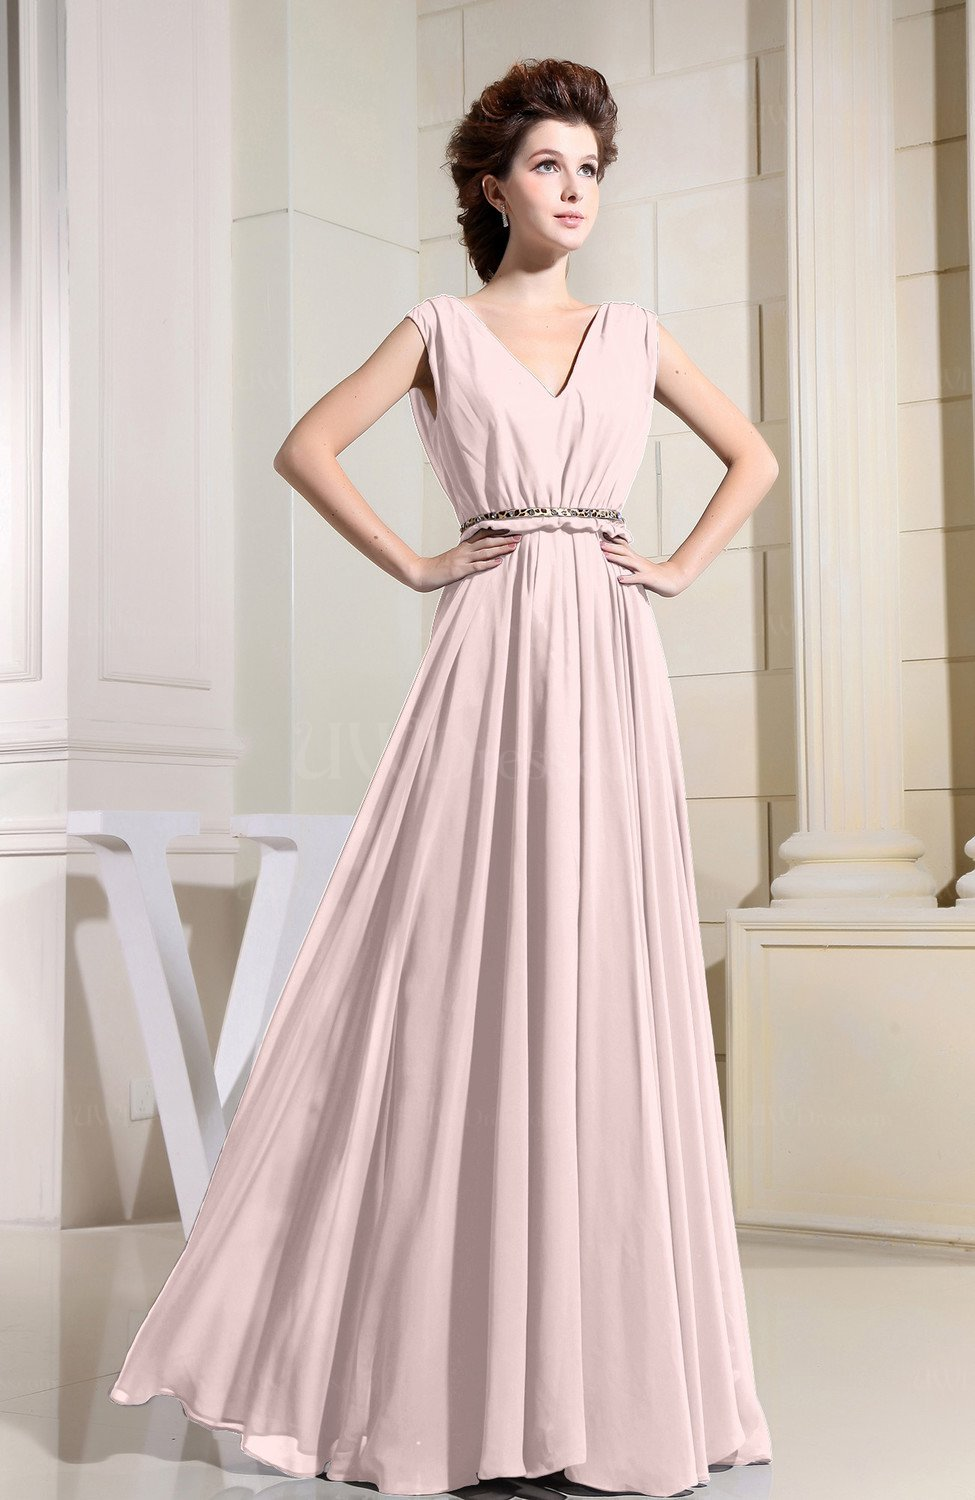 ccd362b70ee Light Pink Casual V-neck Sleeveless Chiffon Pleated Bridesmaid ...